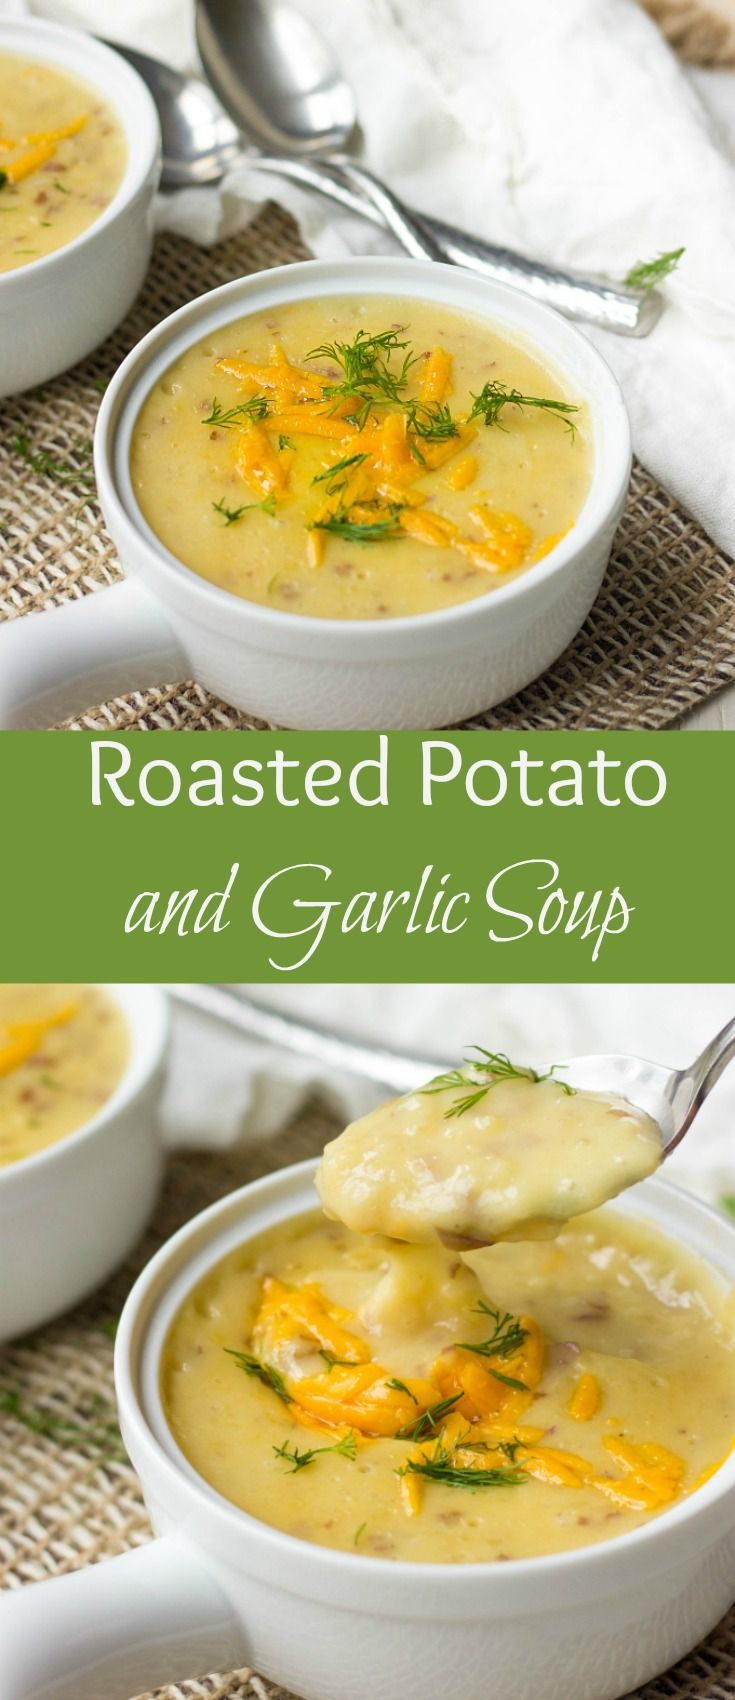 Roasted Potato And Garlic Soup is packed with irresistible flavors. It's made in no time and is sure to warm you up during colder months.